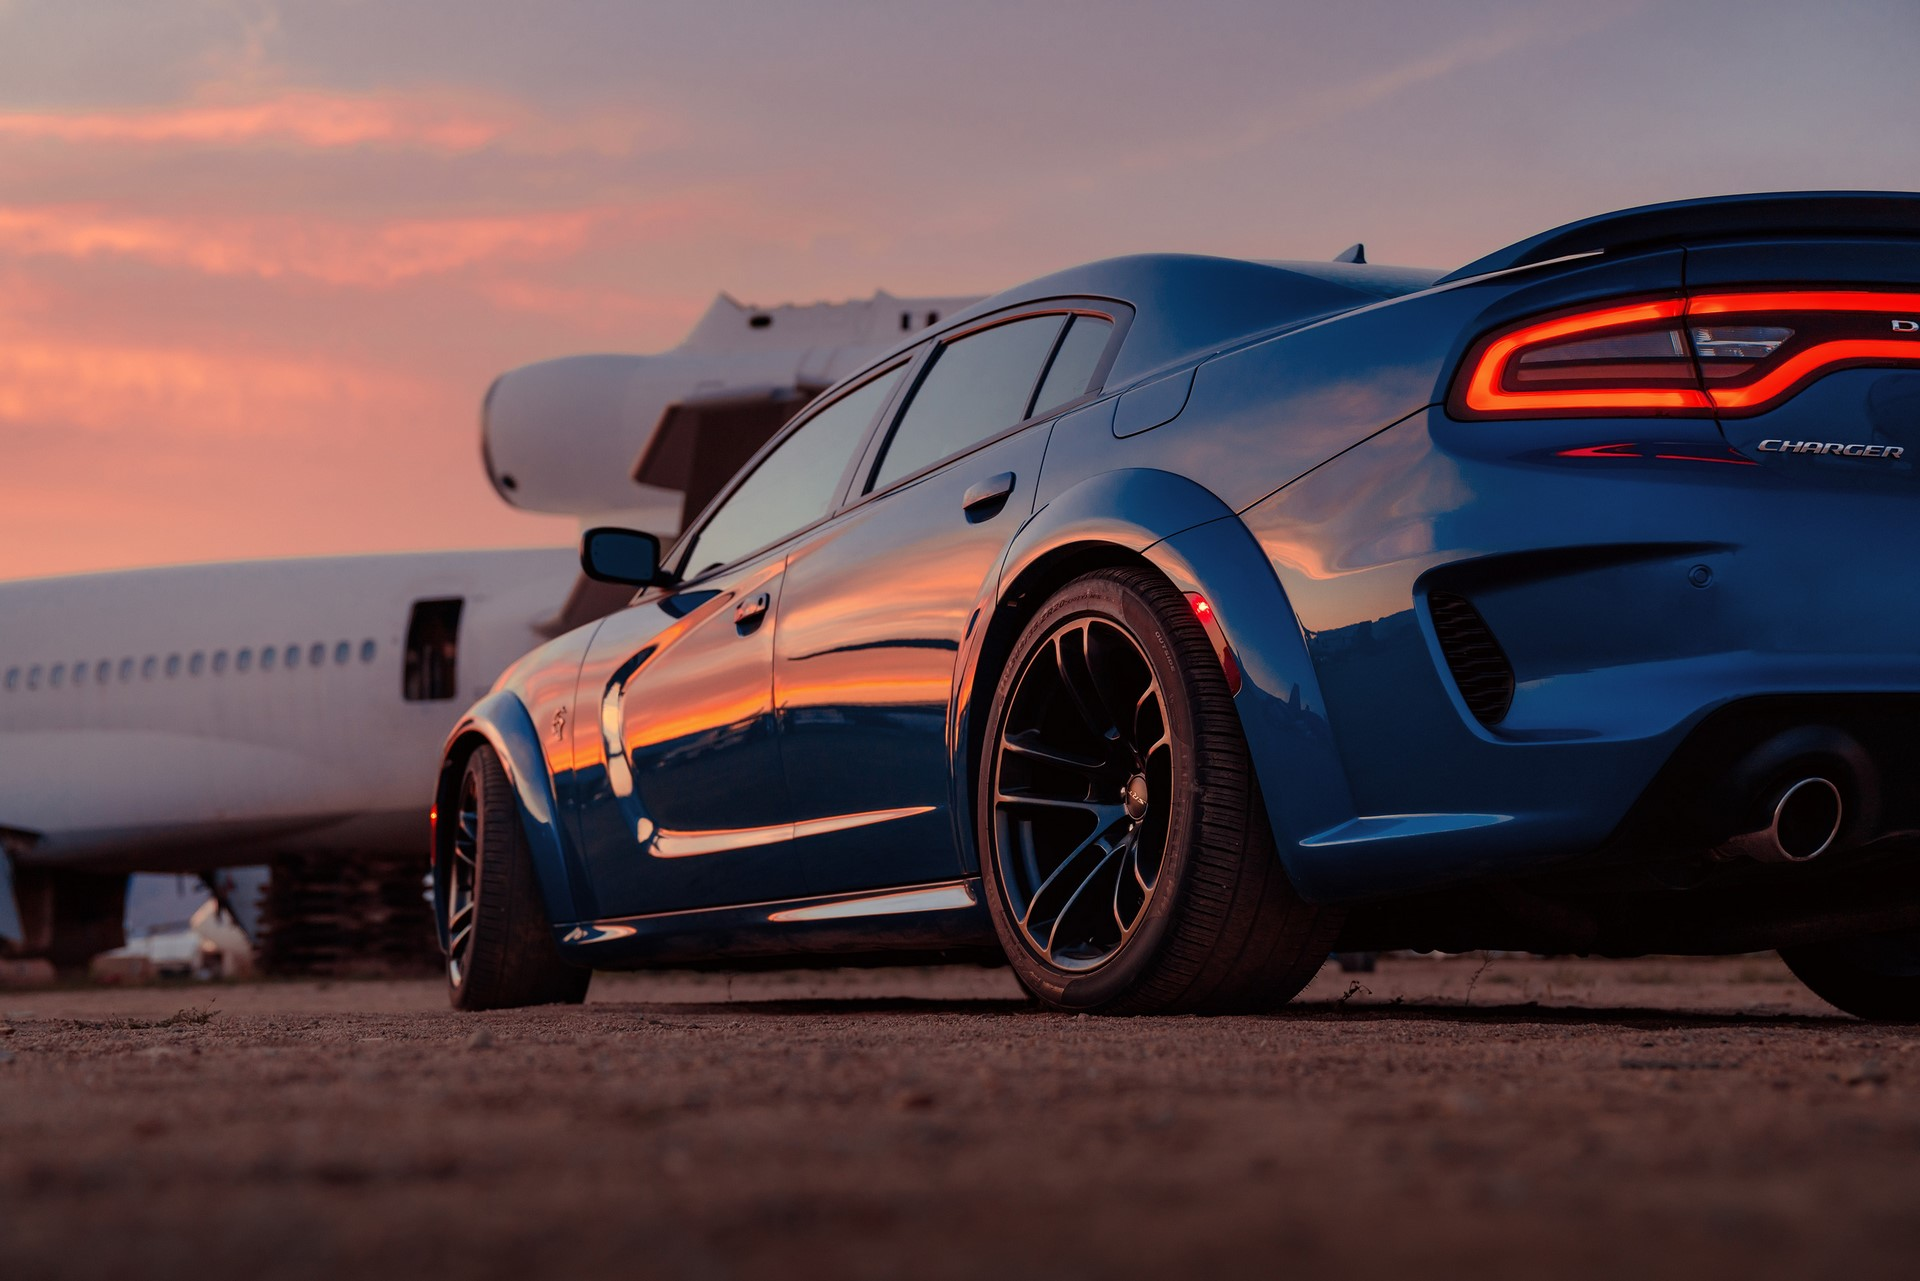 New integrated fender flares add 3.5-inches of width to make room for the wider 20 x 11-inch wheels on the 2020 Dodge Charger SRT Hellcat Widebody